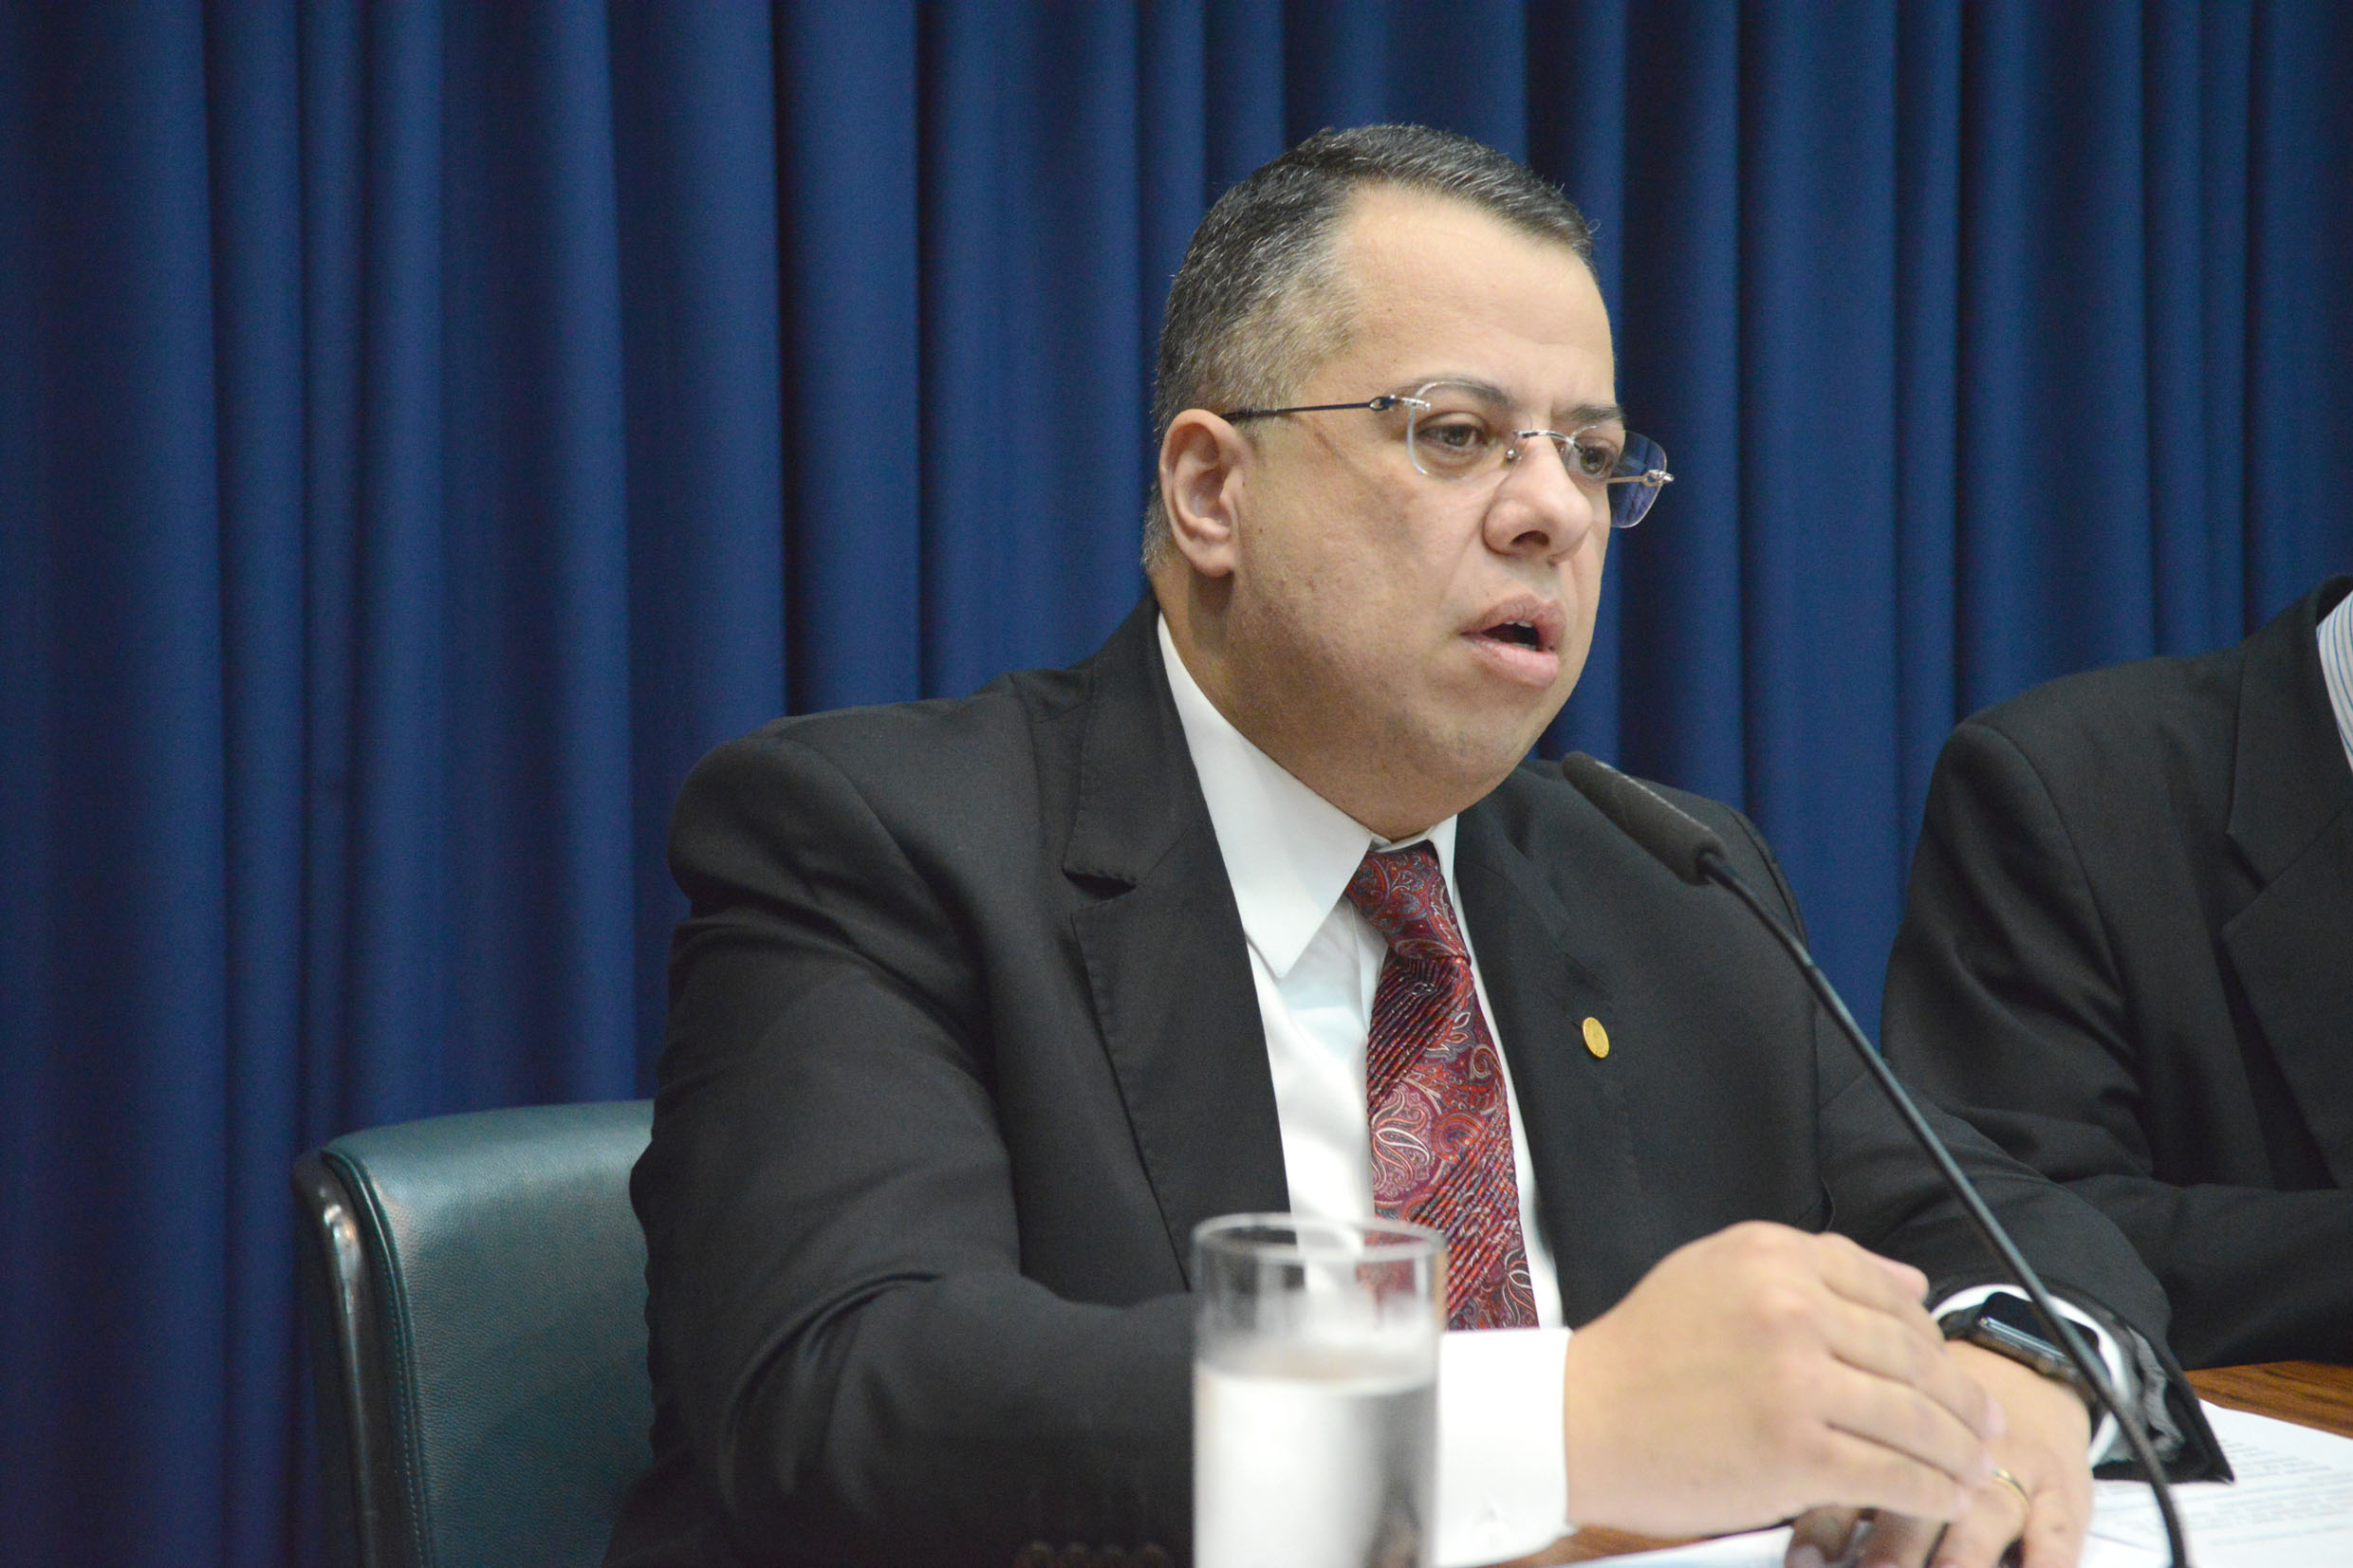 Wellington Moura preside a comissão<a style='float:right' href='https://www3.al.sp.gov.br/repositorio/noticia/N-05-2019/fg234921.jpg' target=_blank><img src='/_img/material-file-download-white.png' width='14px' alt='Clique para baixar a imagem'></a>